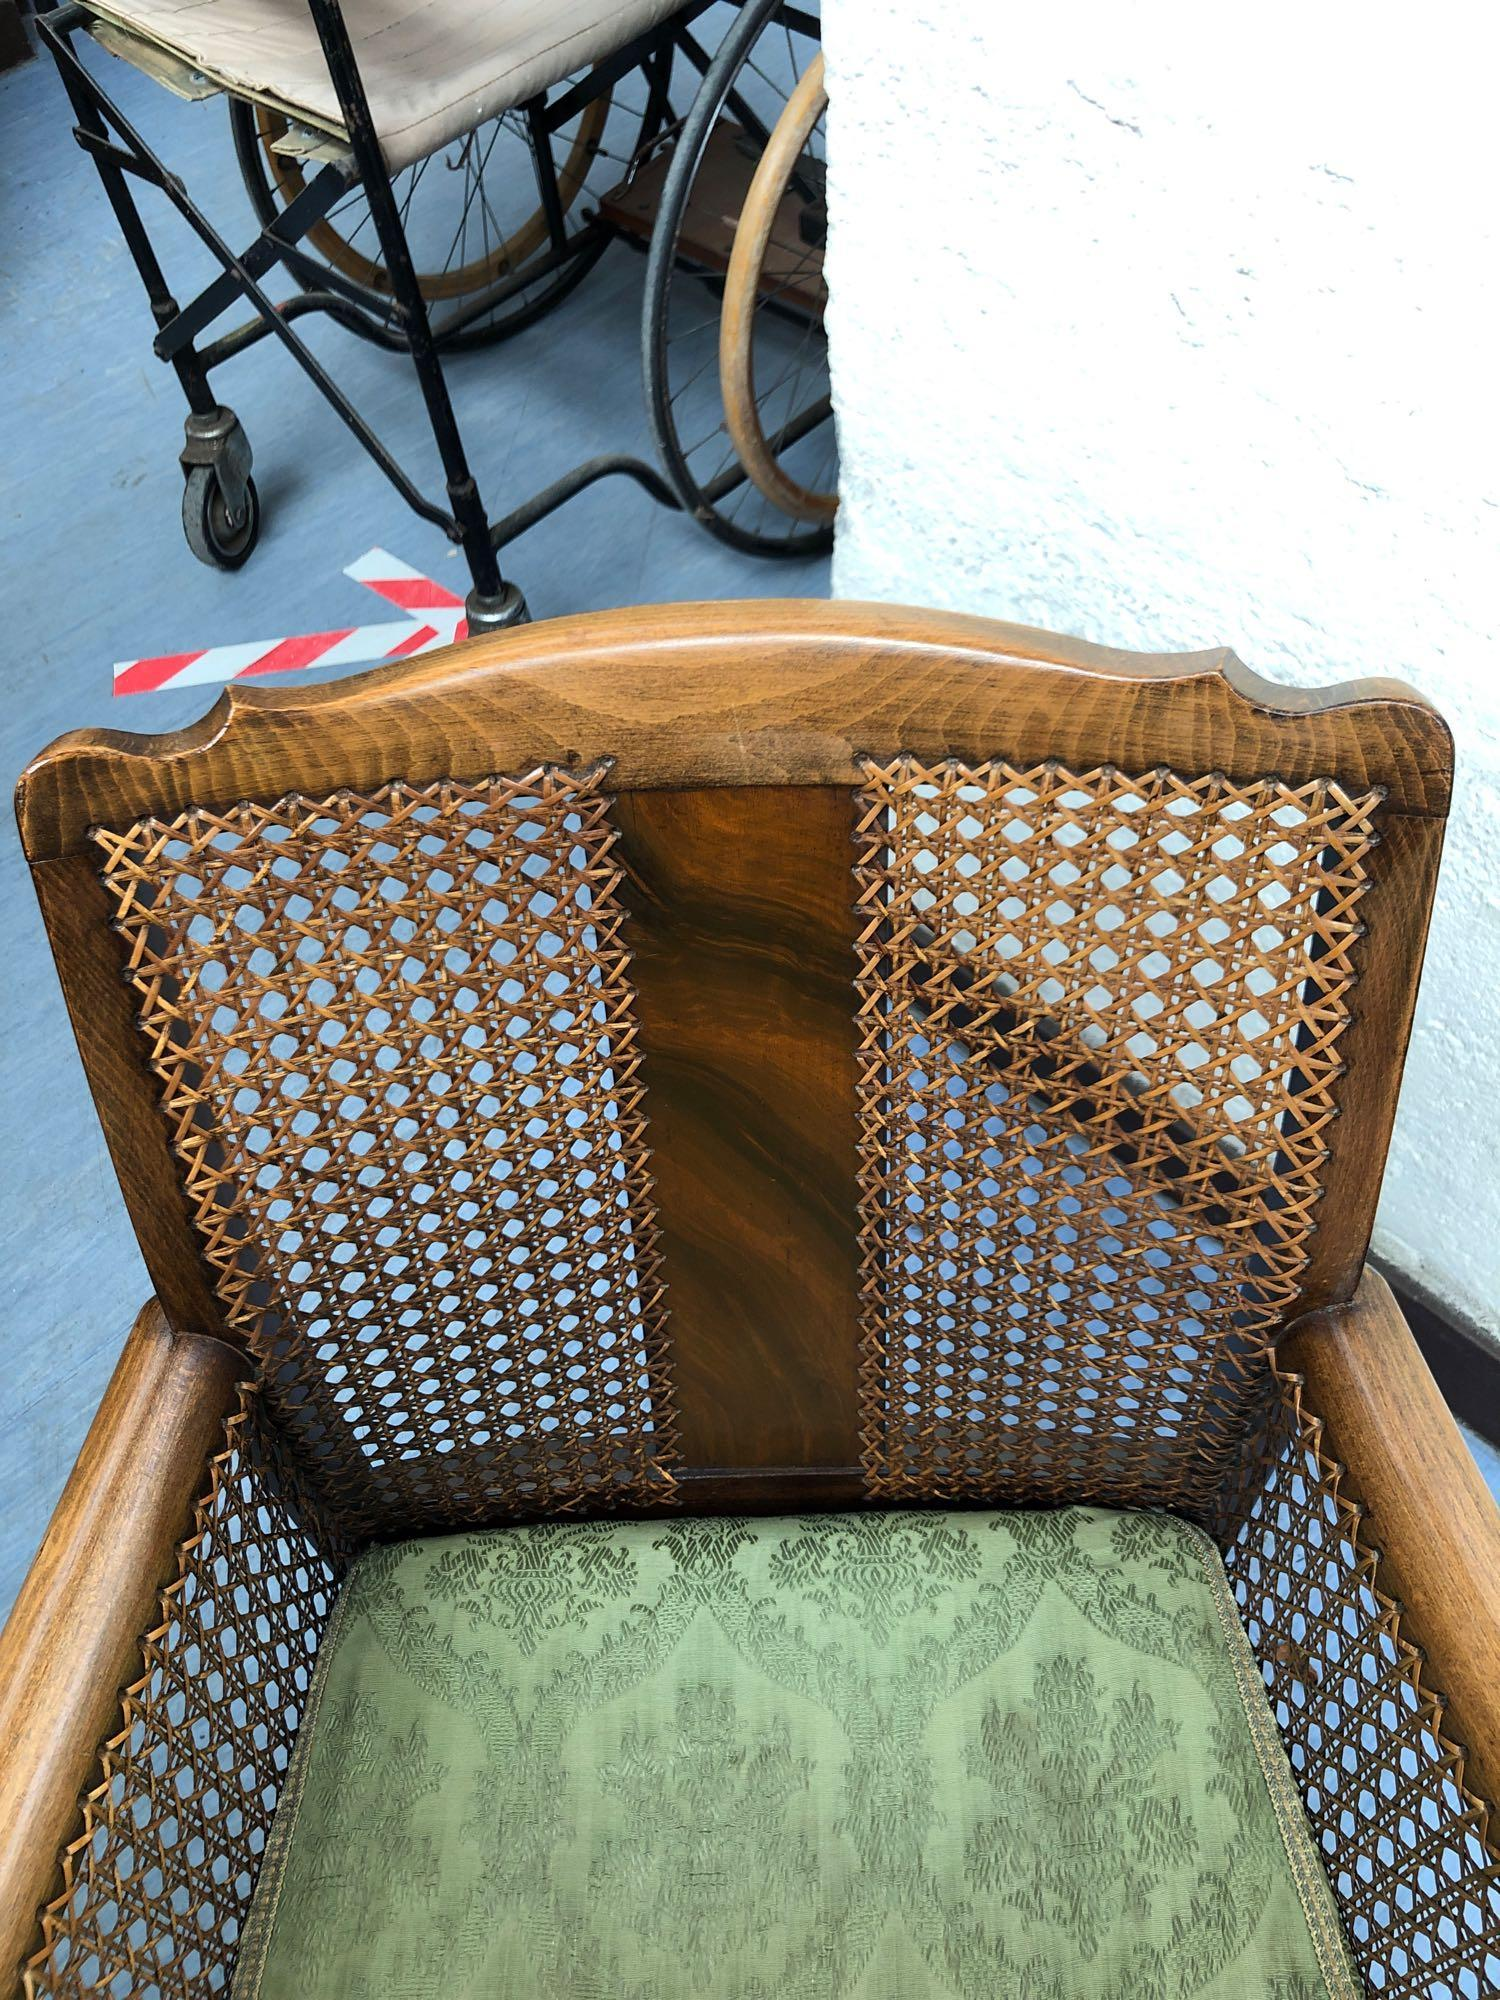 CANE CHAIR - Image 3 of 3